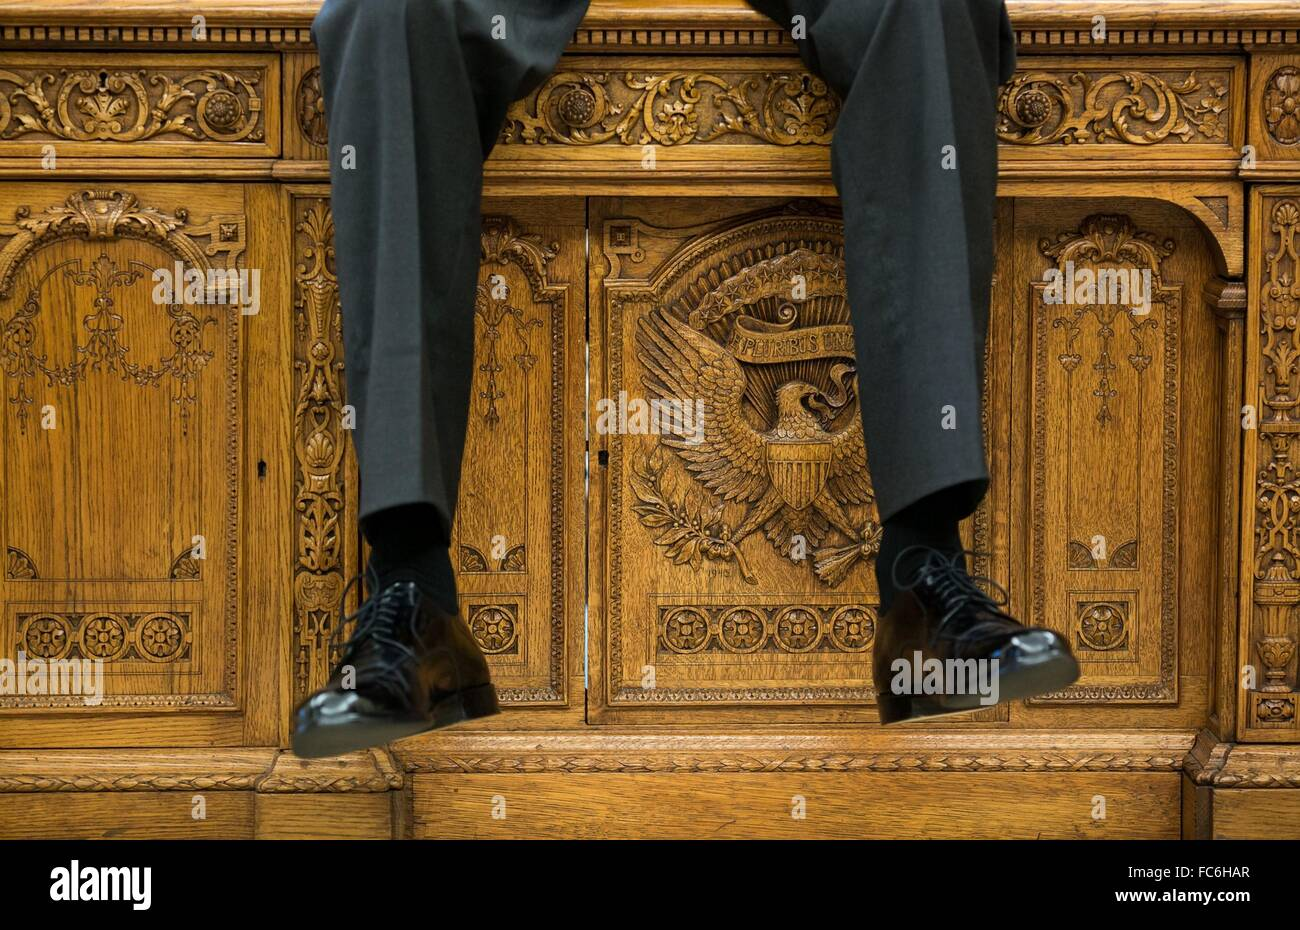 oval office resolute desk. U.S President Barack Obama Hands His Legs Over The Resolute Desk During A Meeting With Aides In Oval Office Of White House October 1, T